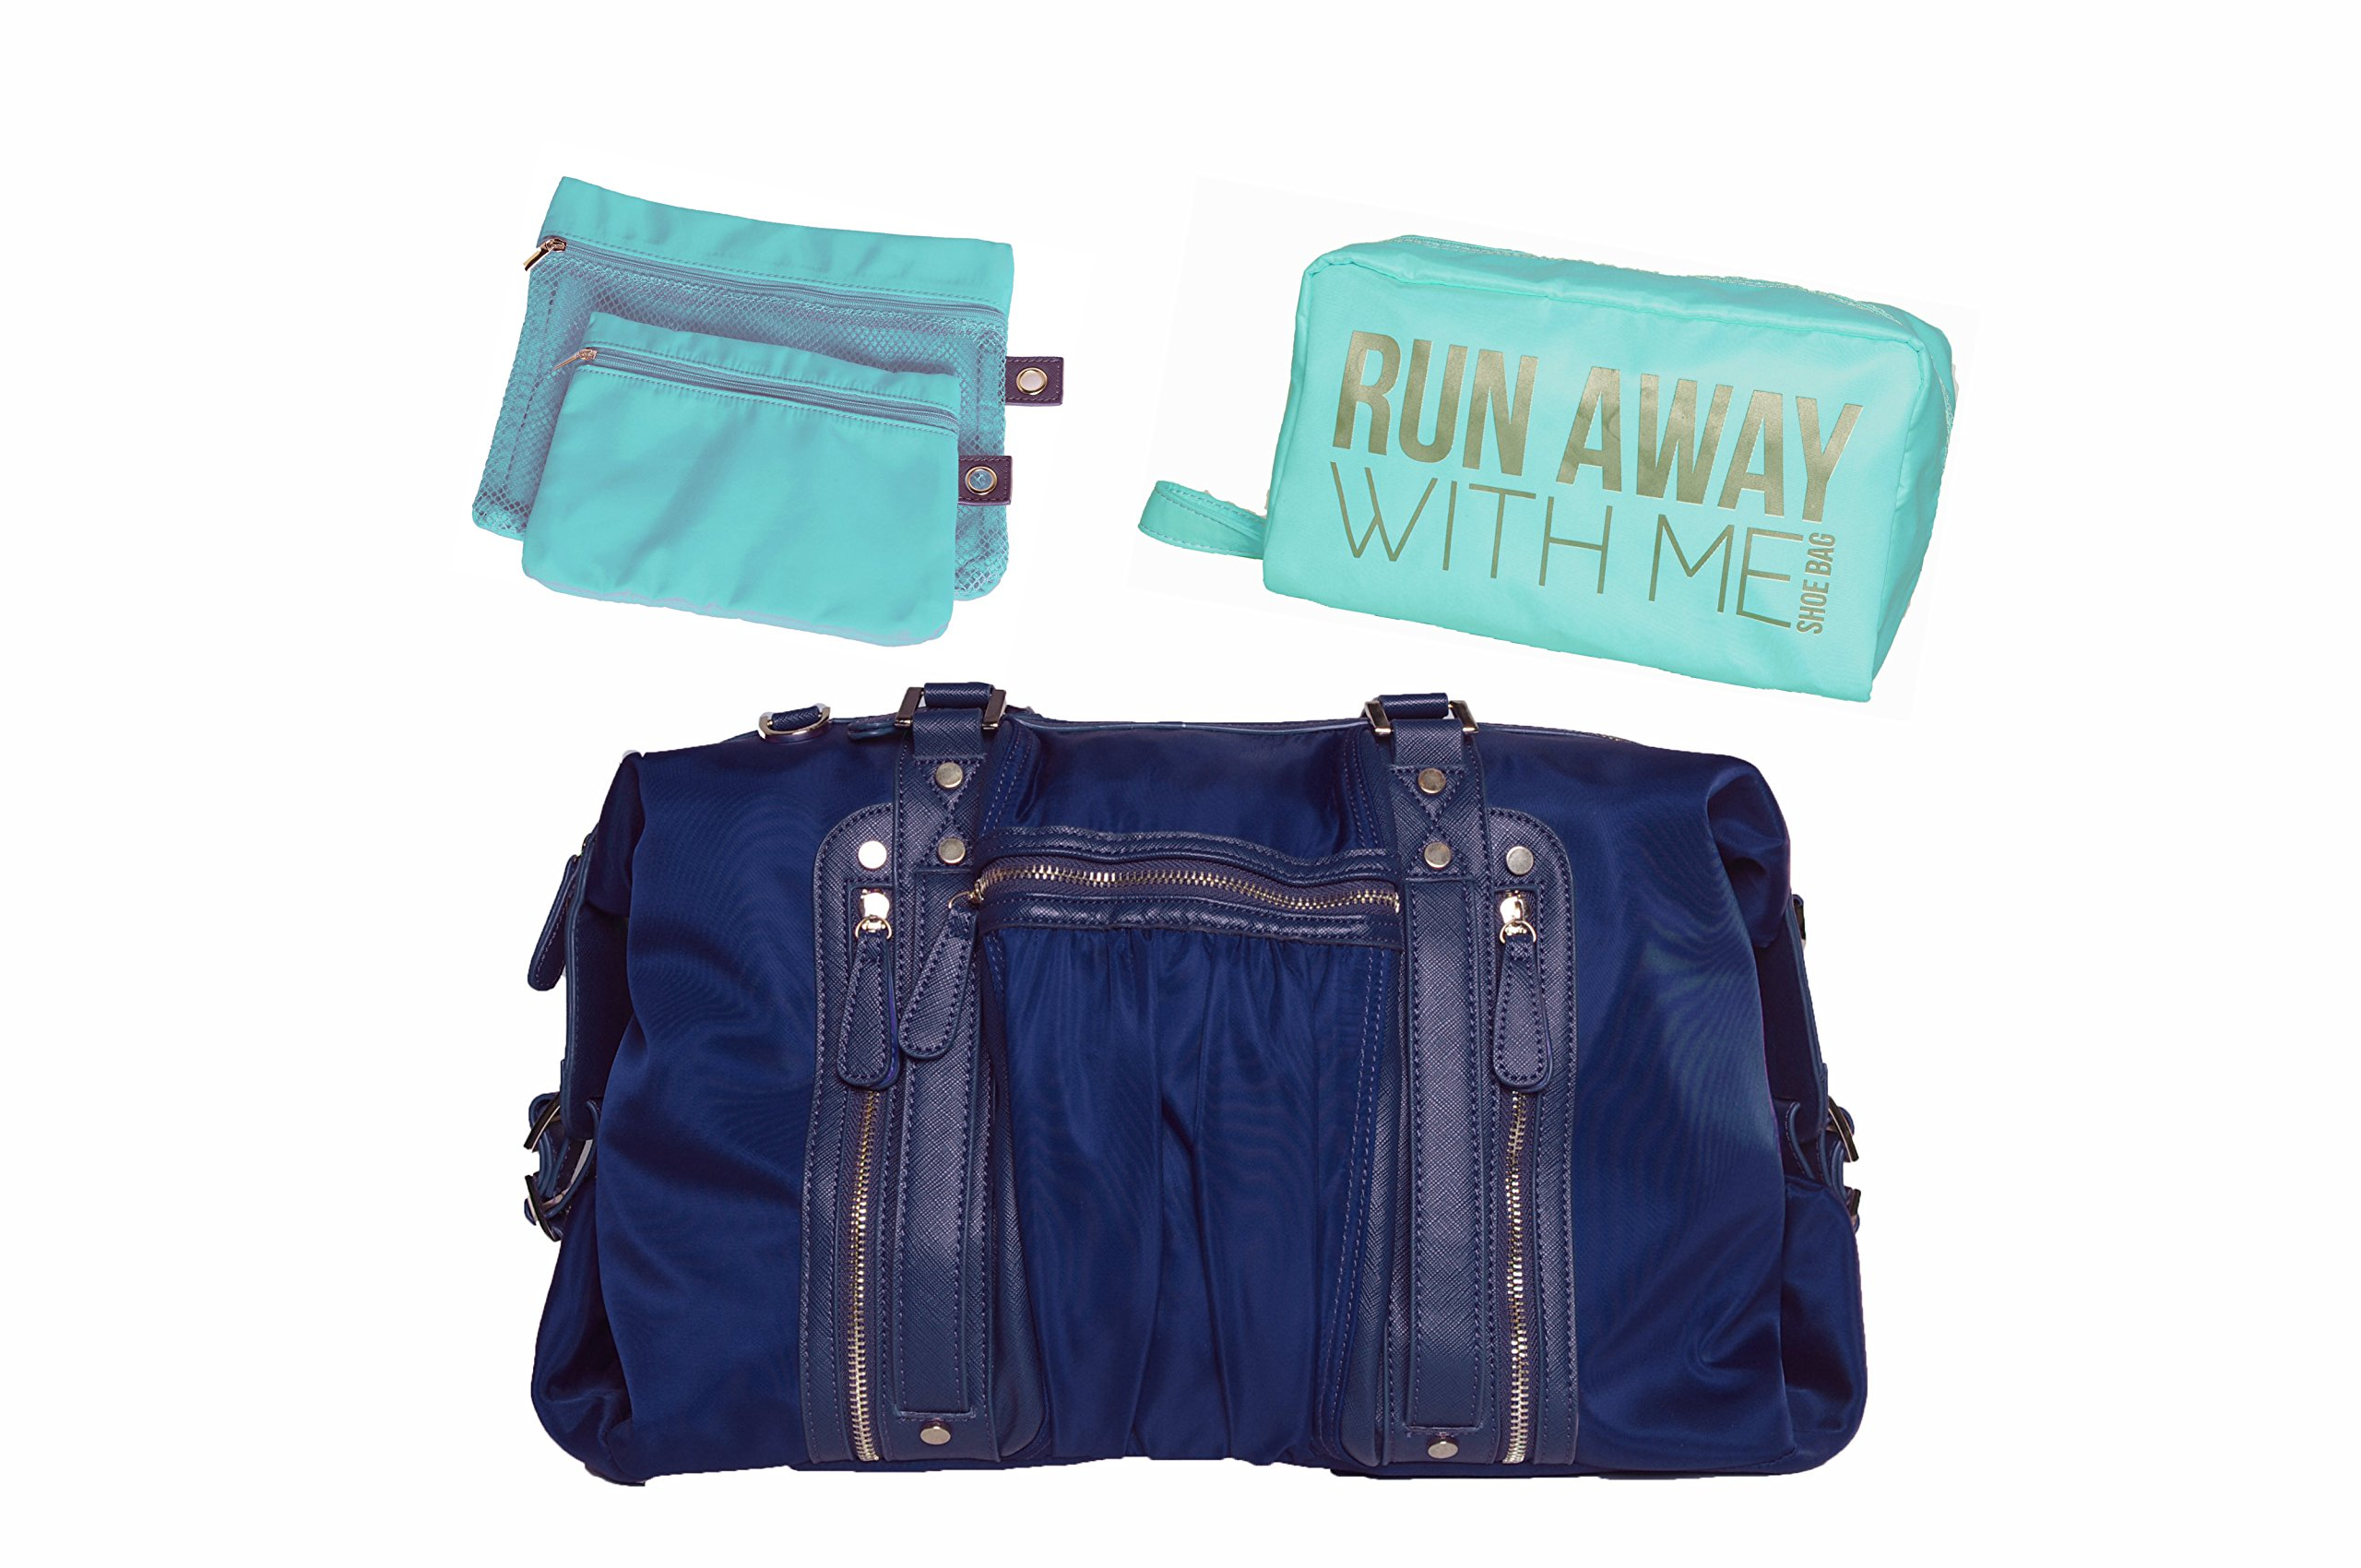 Hang Accessories Navy Athleisure Yoga Tote Bag